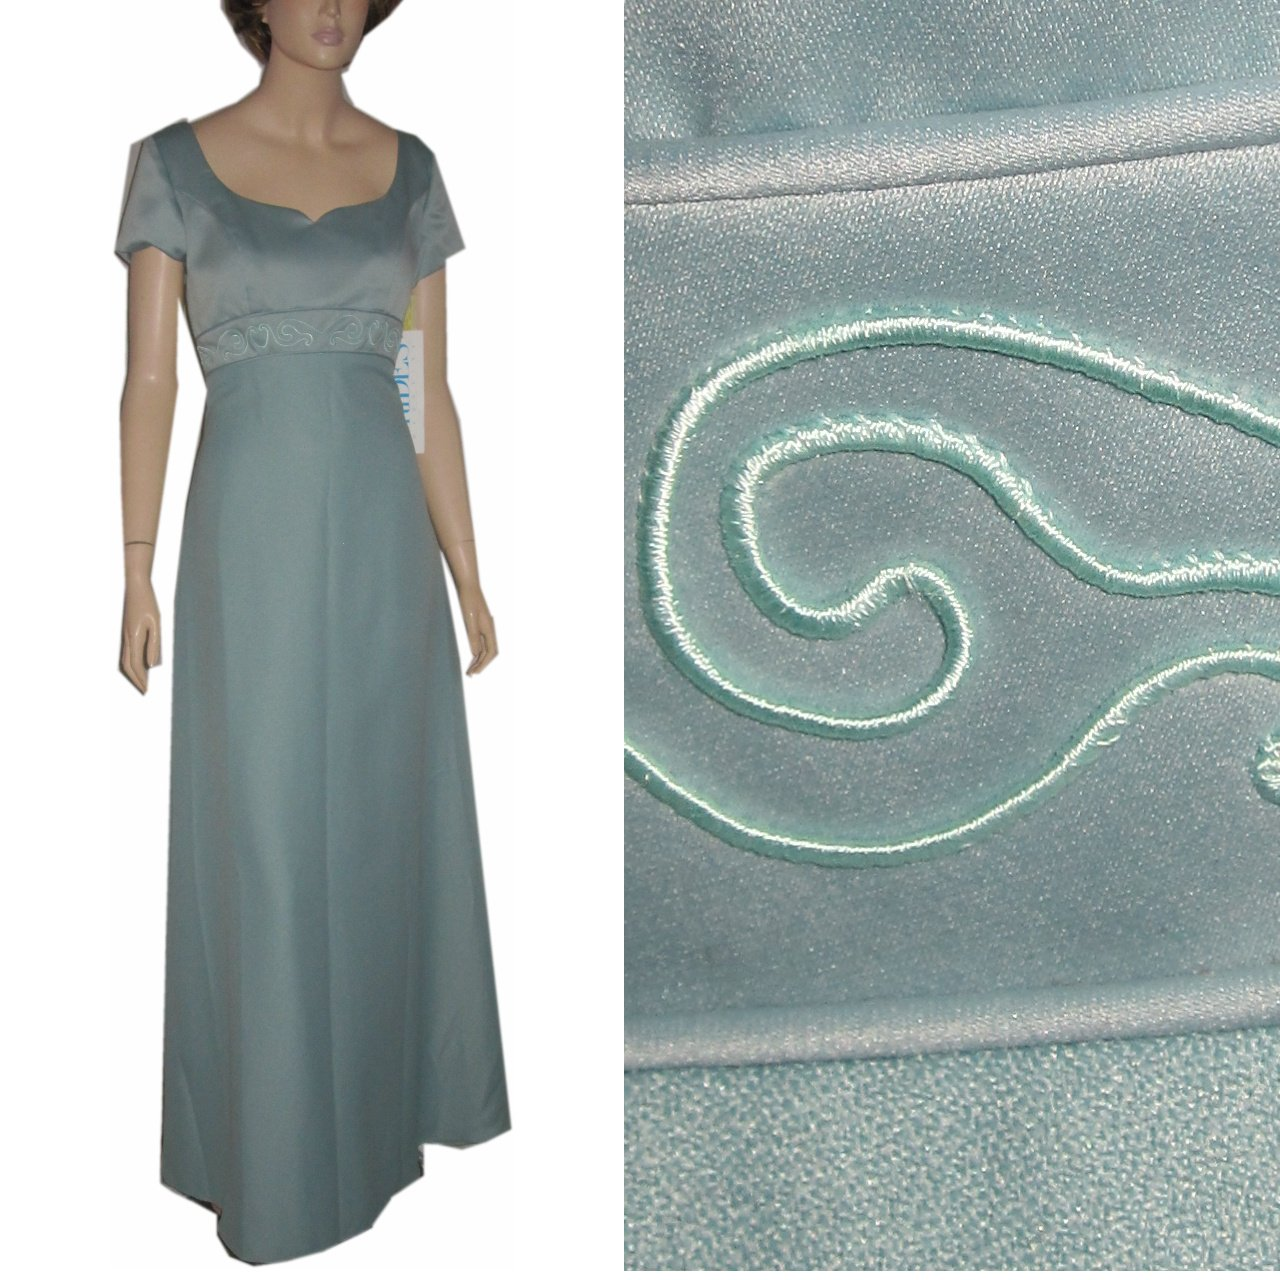 sz M - '70s JORDAN Empire Satin Gown UNWORN w/tags - Aquamarine